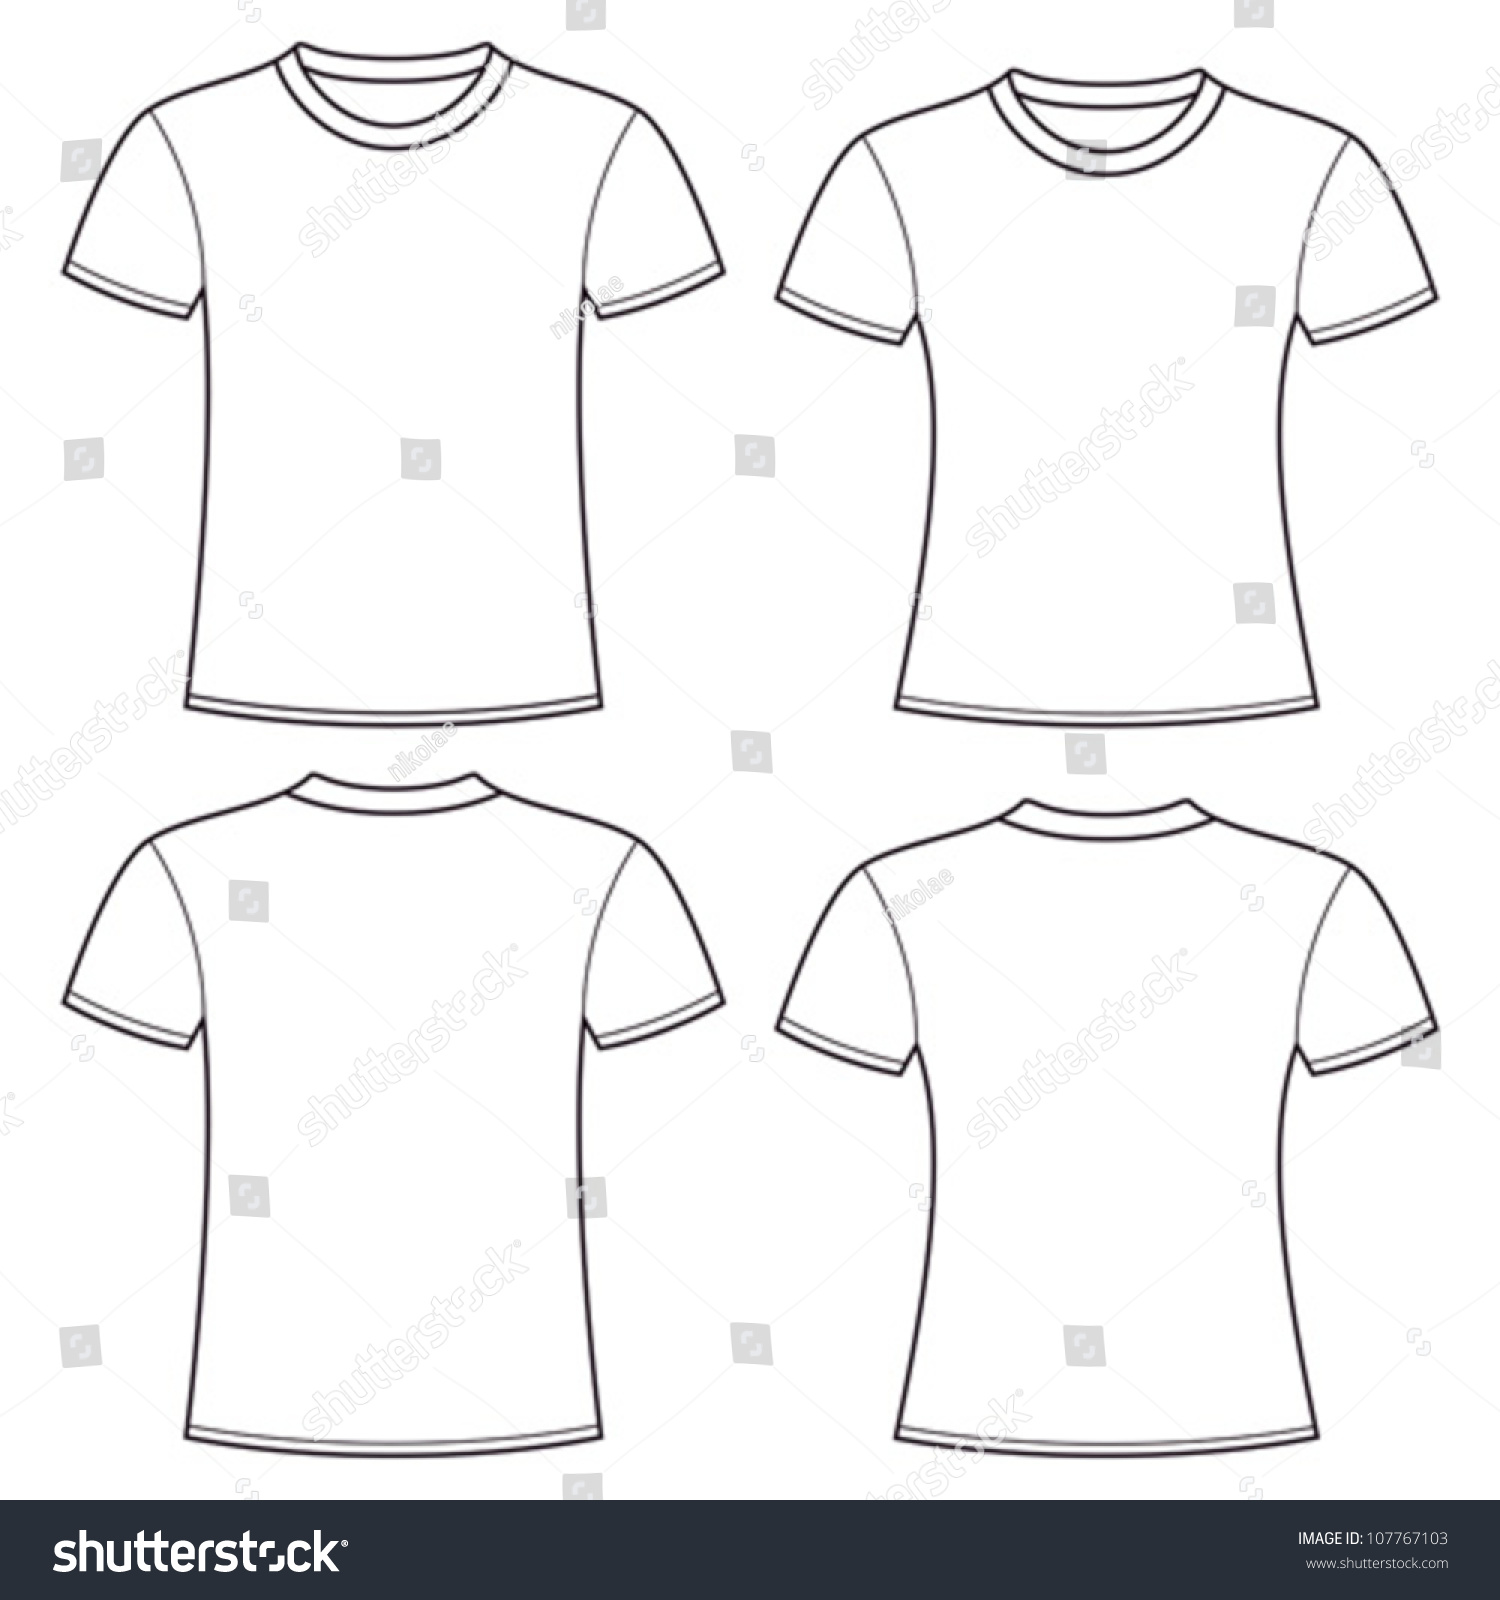 full size t shirt template - blank t shirts template stock vector illustration